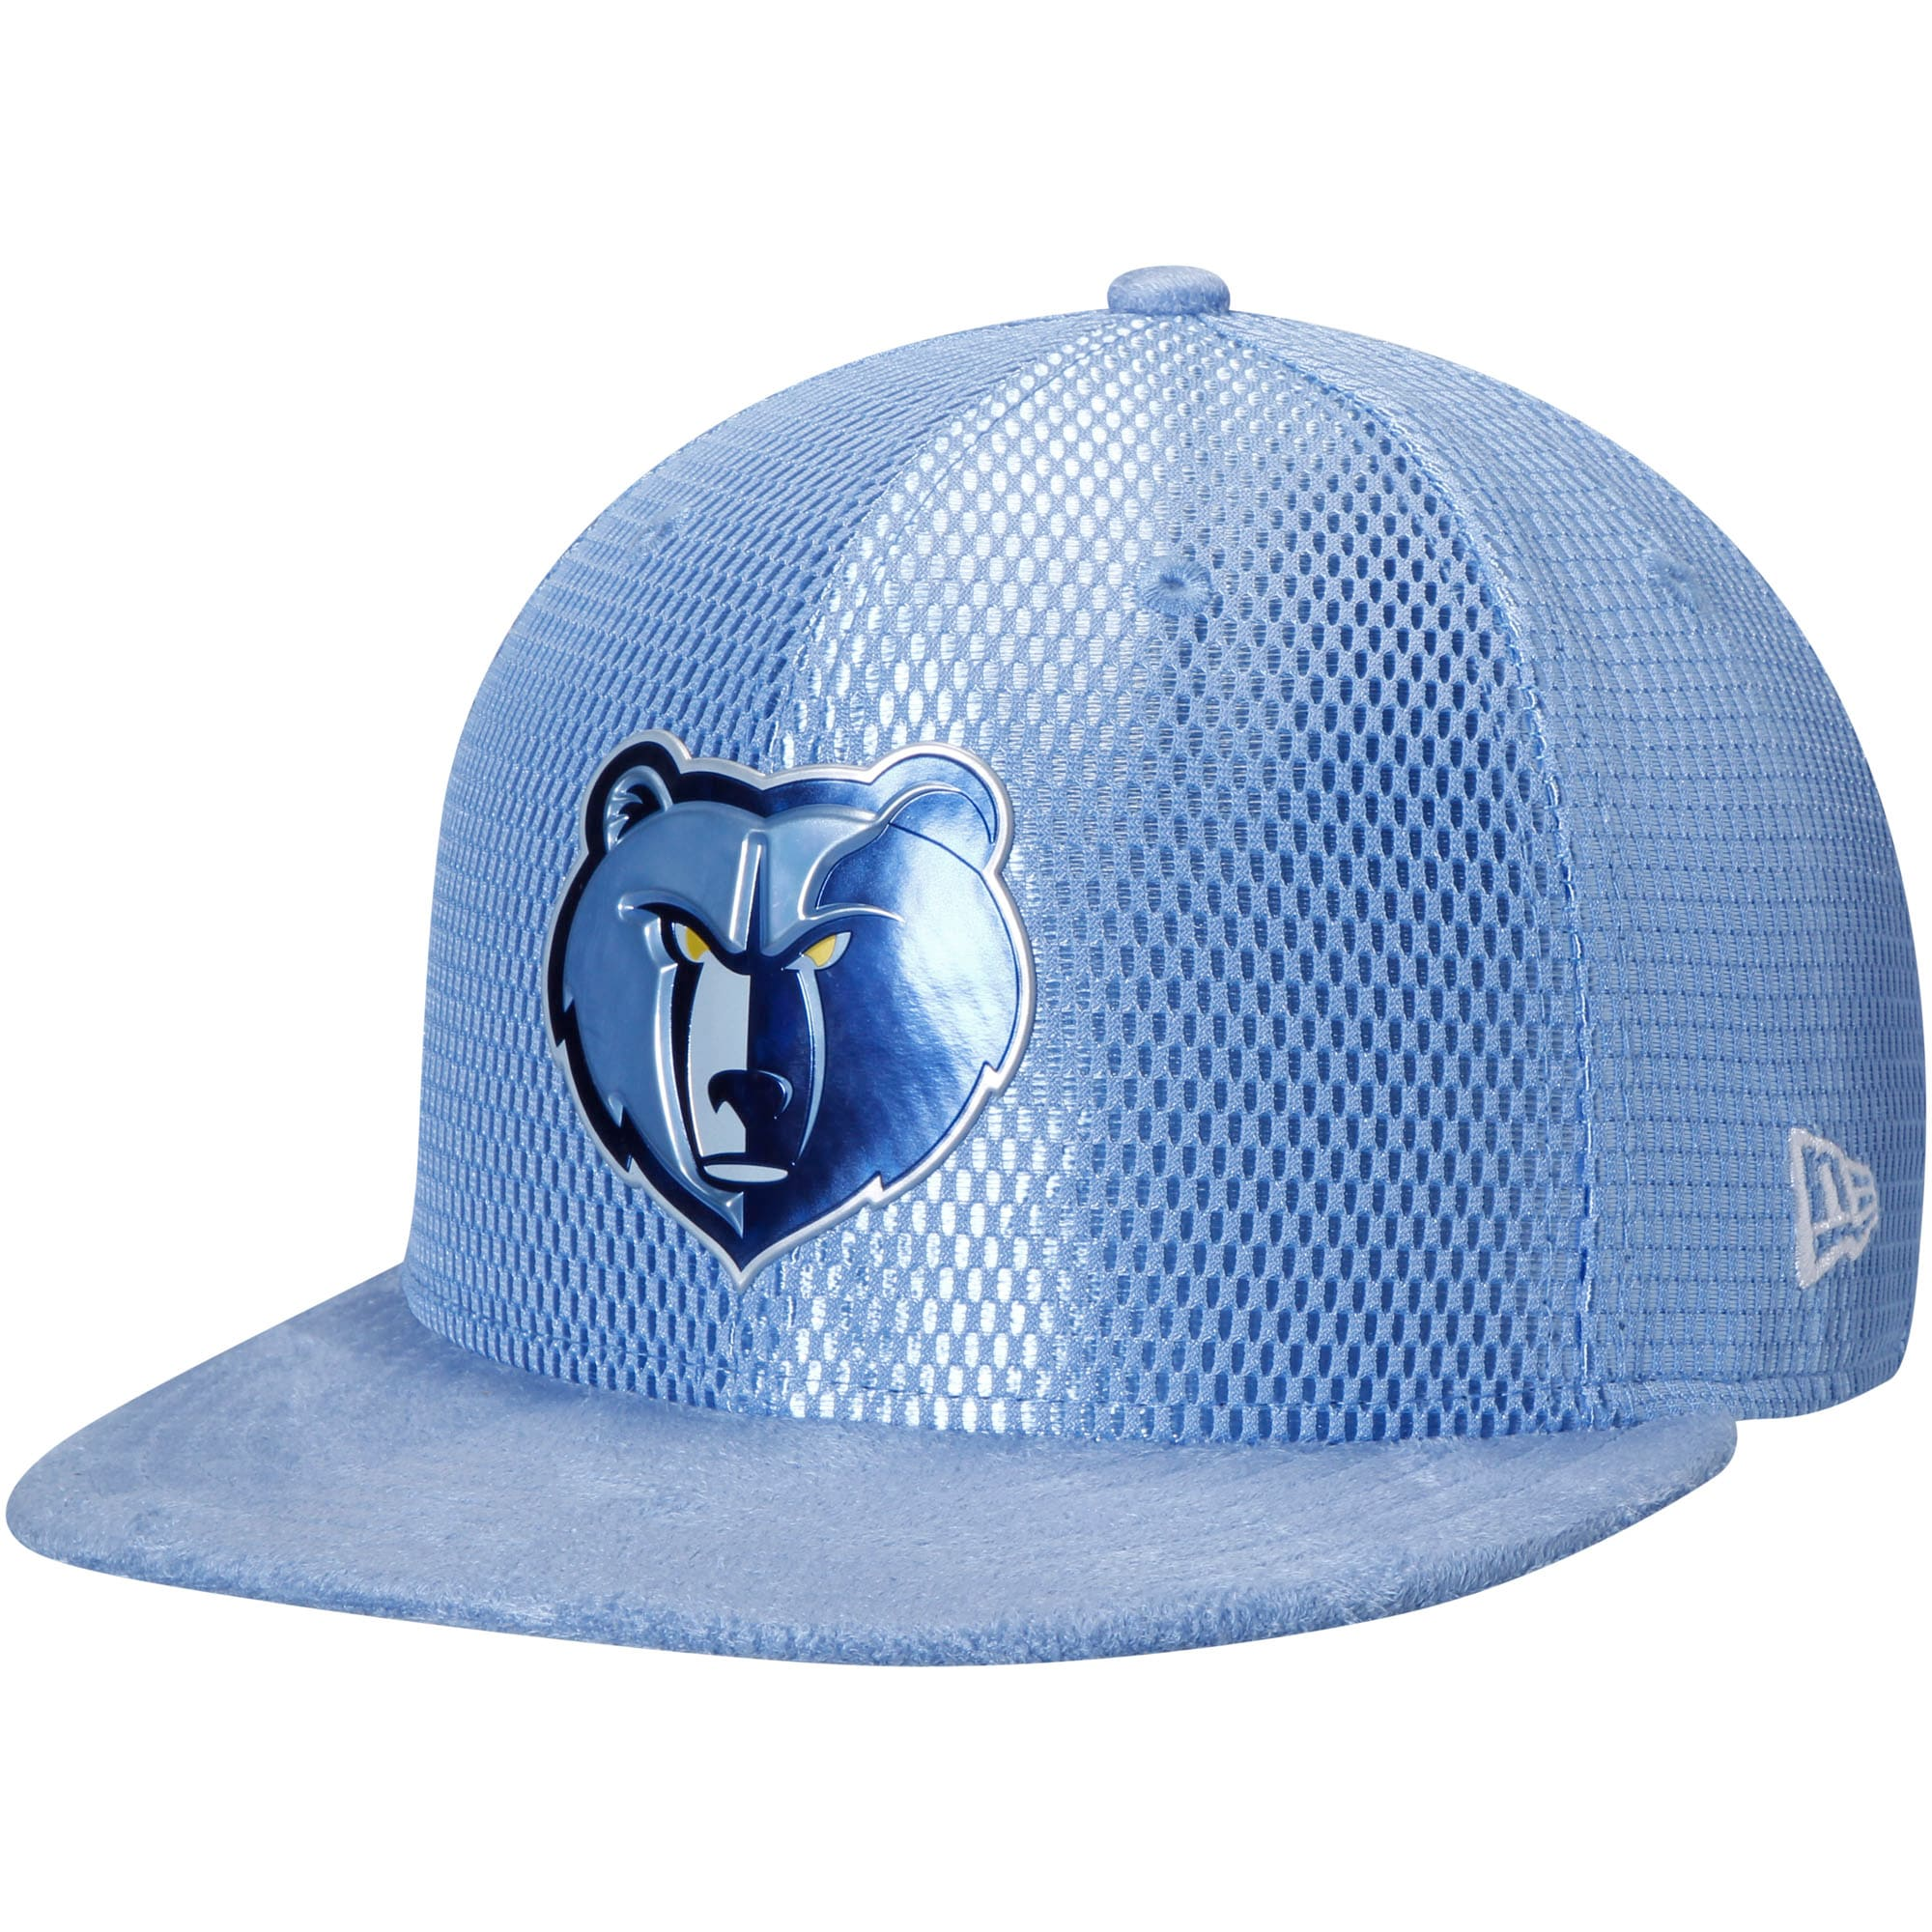 Memphis Grizzlies New Era 2017 NBA Draft Official On Court Collection 59FIFTY Fitted Hat - Light Blue